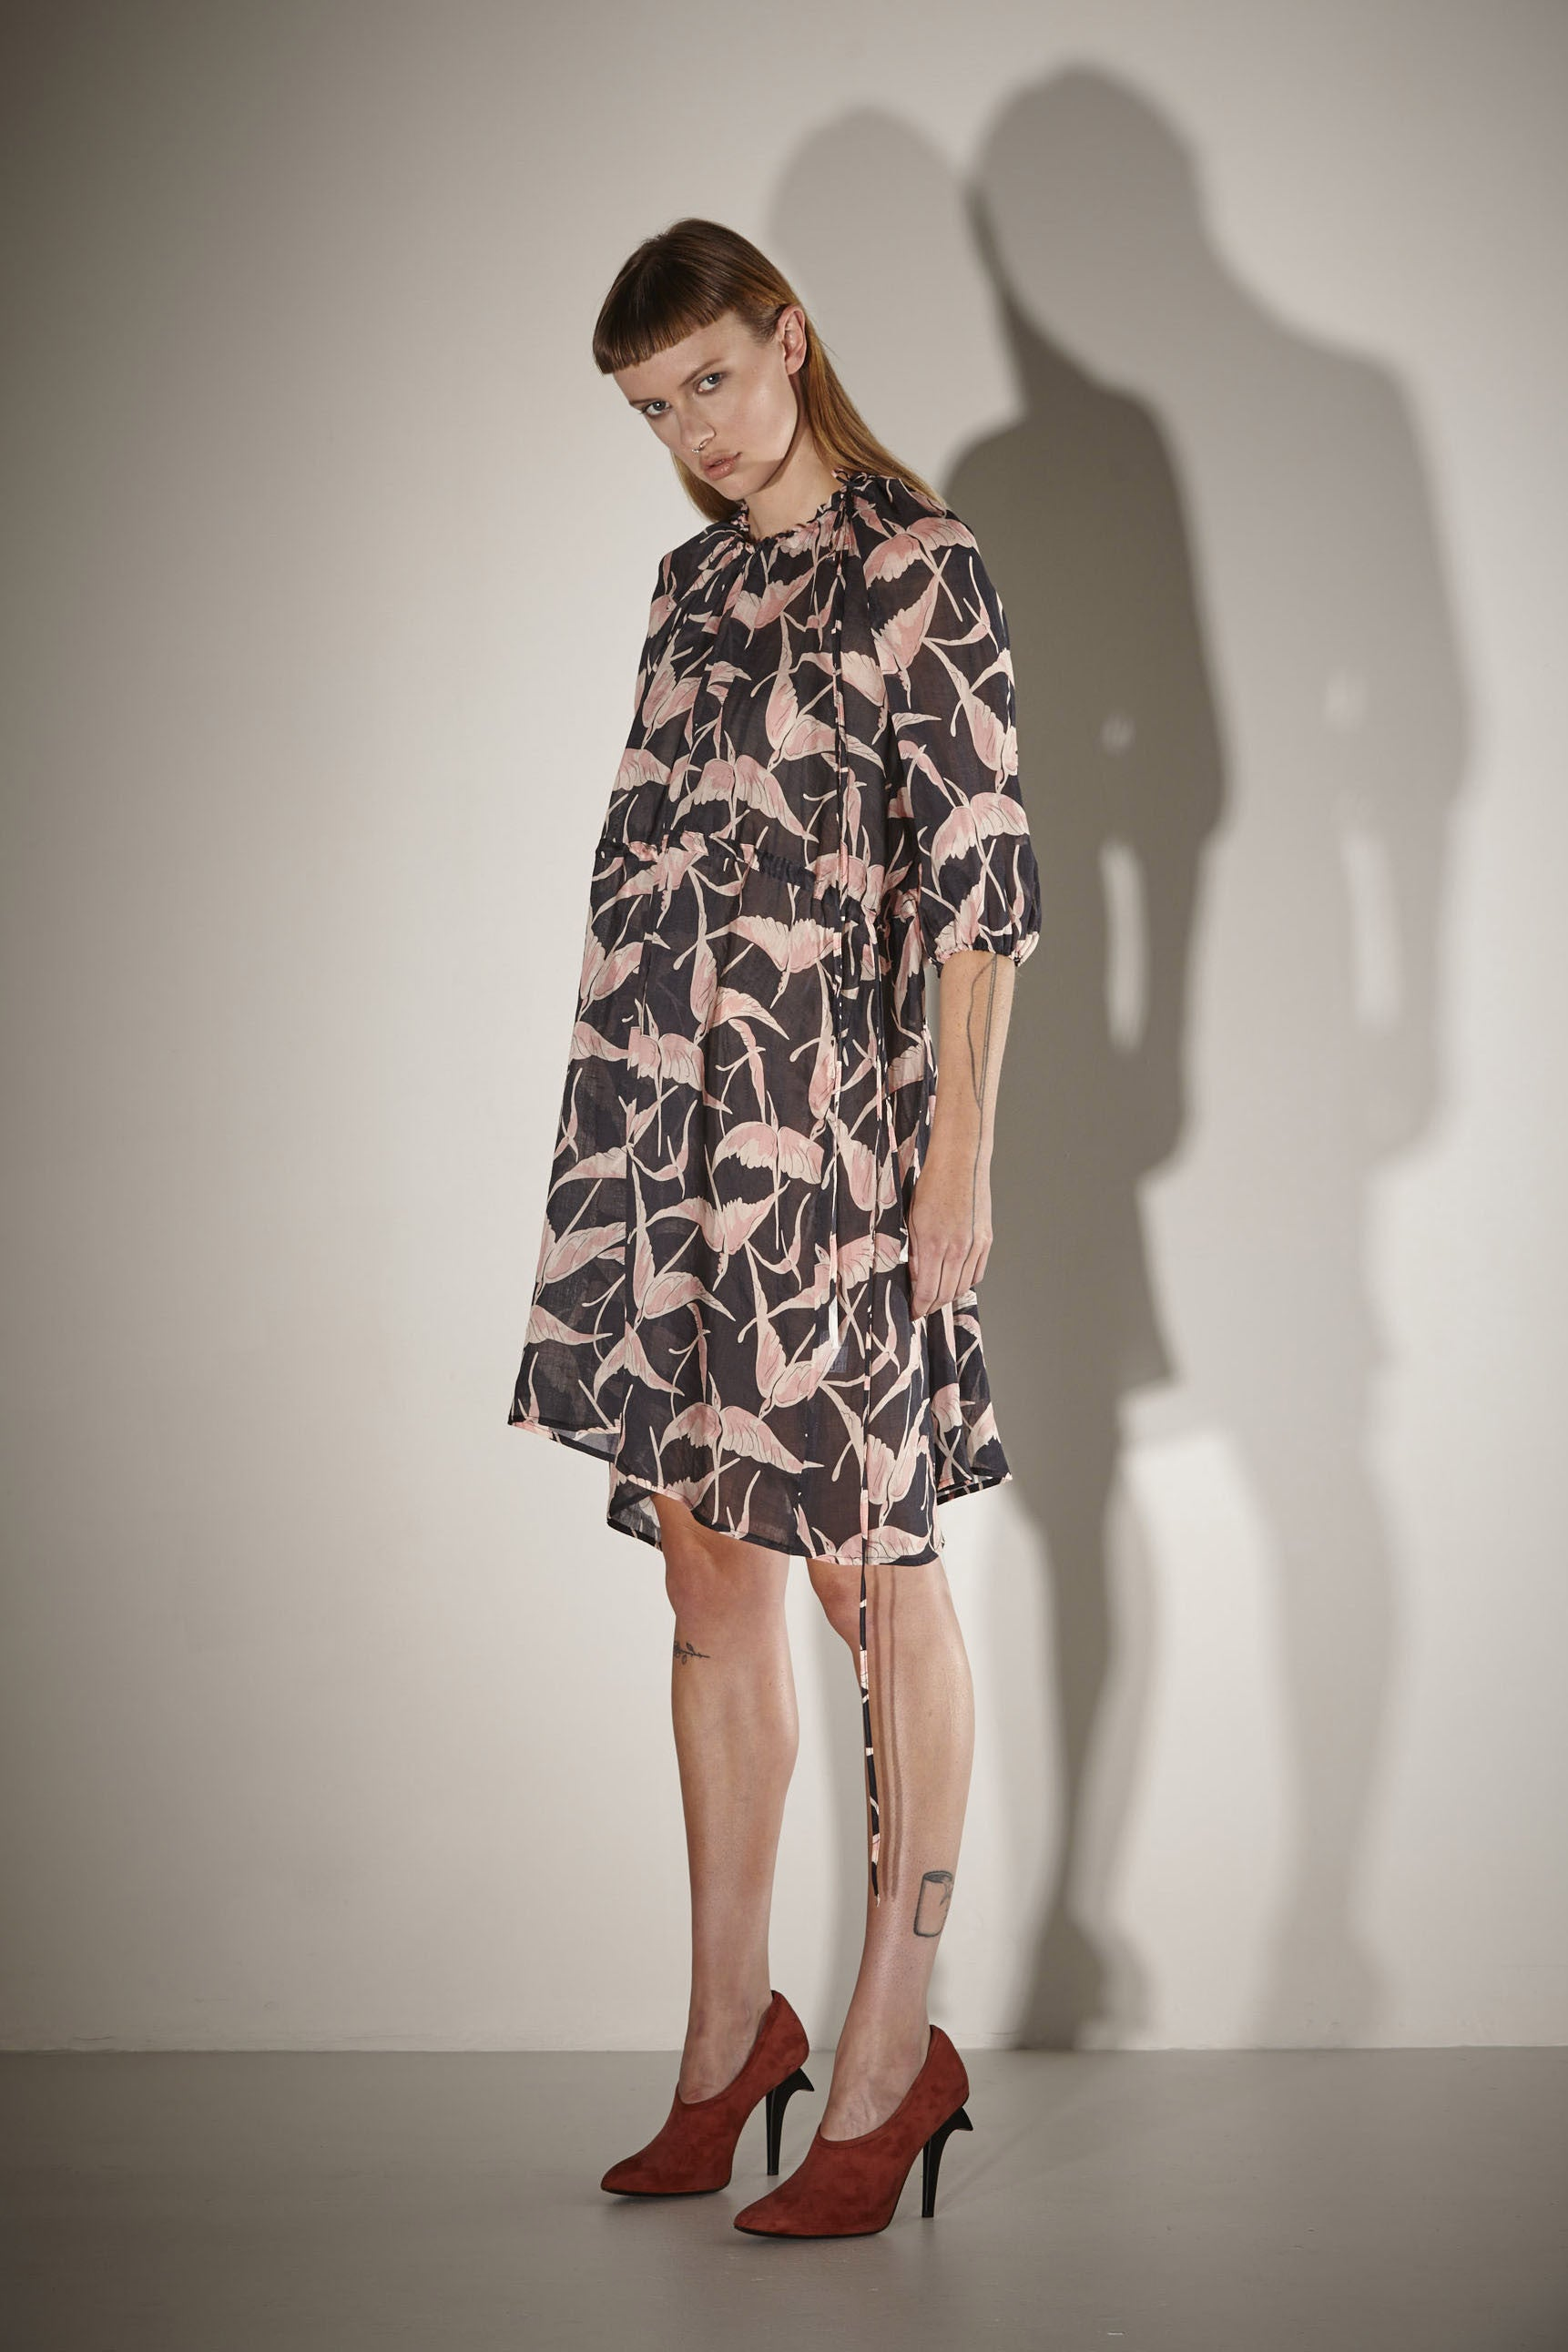 Ricochet NZ Fashion Designer Clothing SS17 Exclusive Storkville Print Ramie Gathered Neck Sarah Dress Oversize